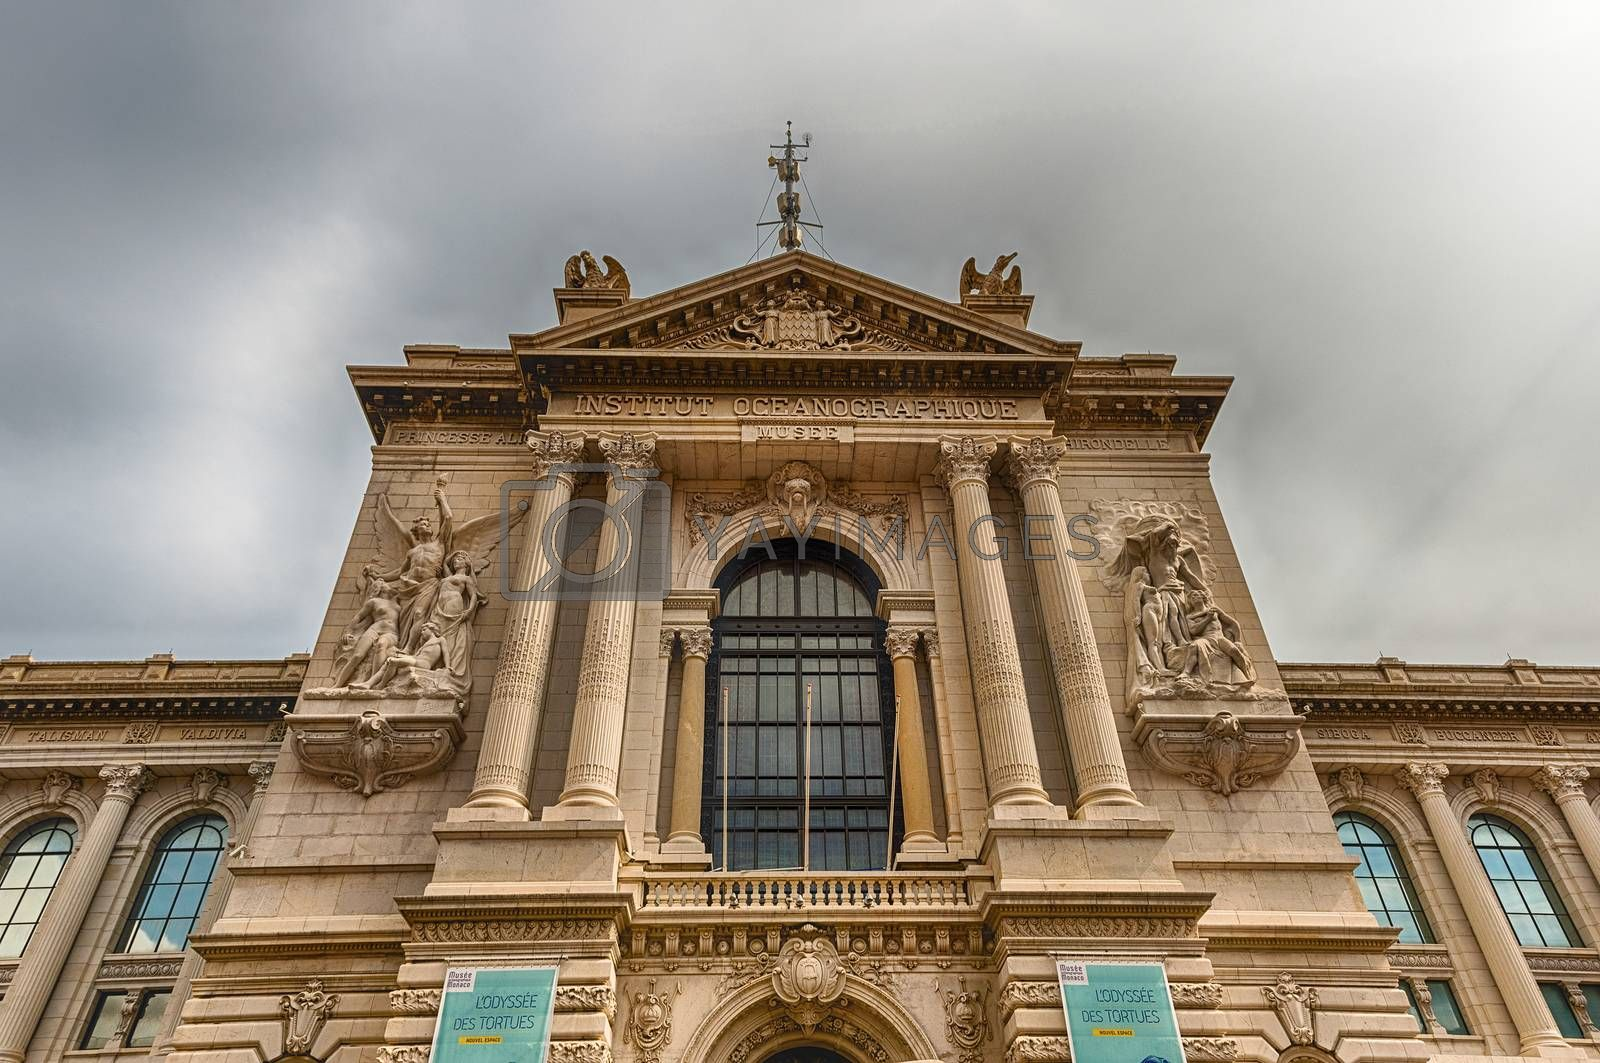 Facade of the Oceanographic Museum of Monaco, iconic landmark in Monaco City, aka Le Rocher or The Rock